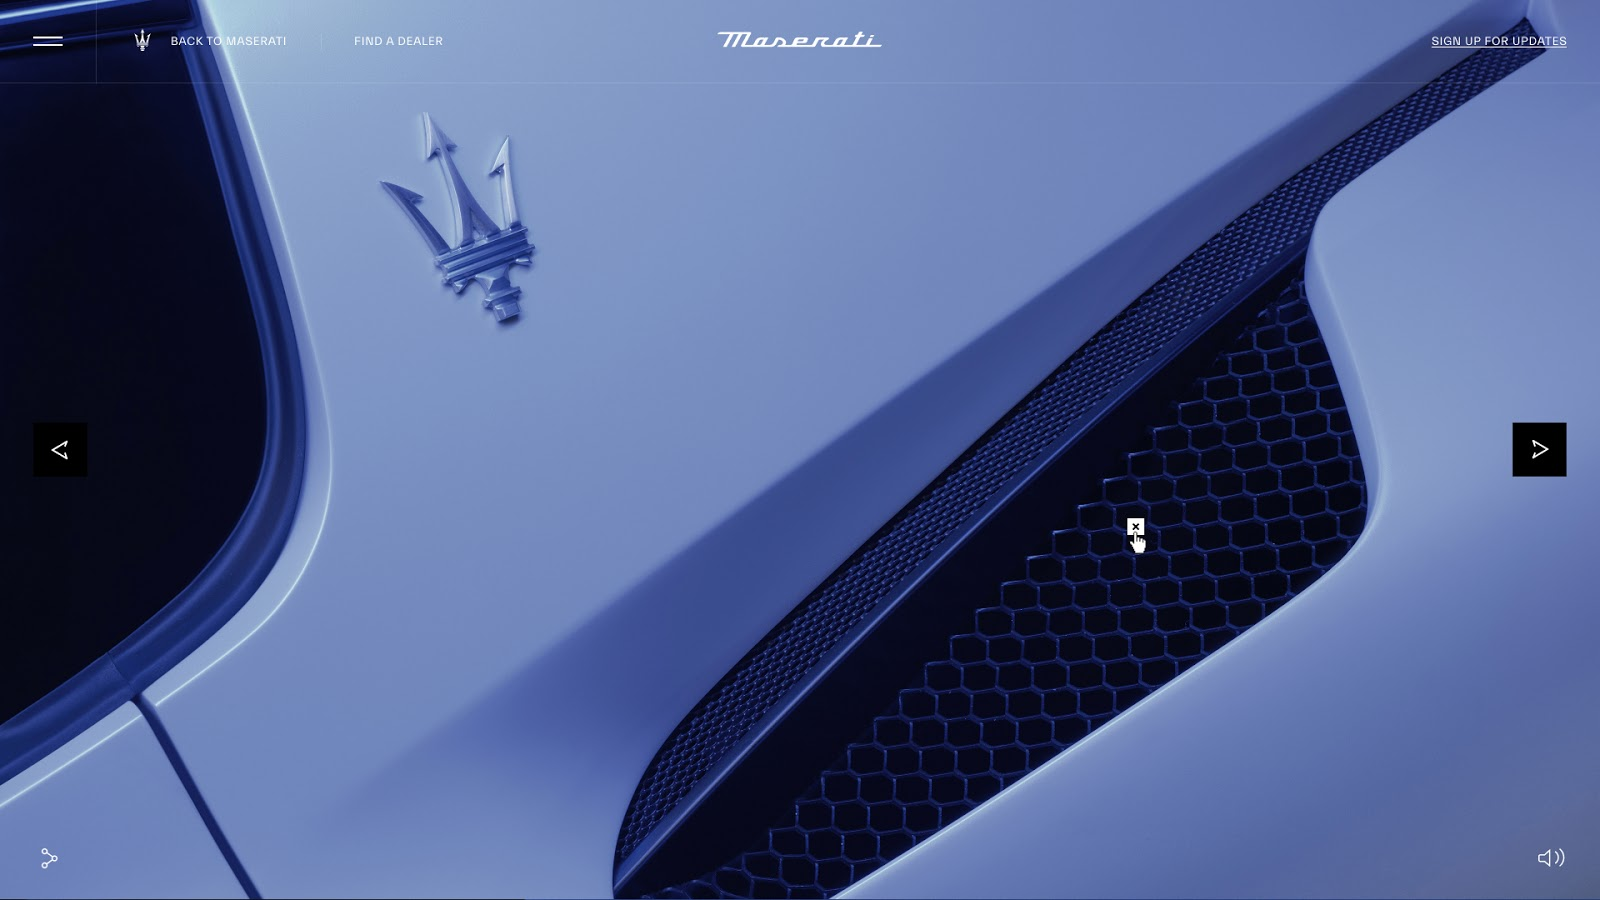 Maserati premieres MC20 Supercar with online product launch platform 'Toast' via Resn